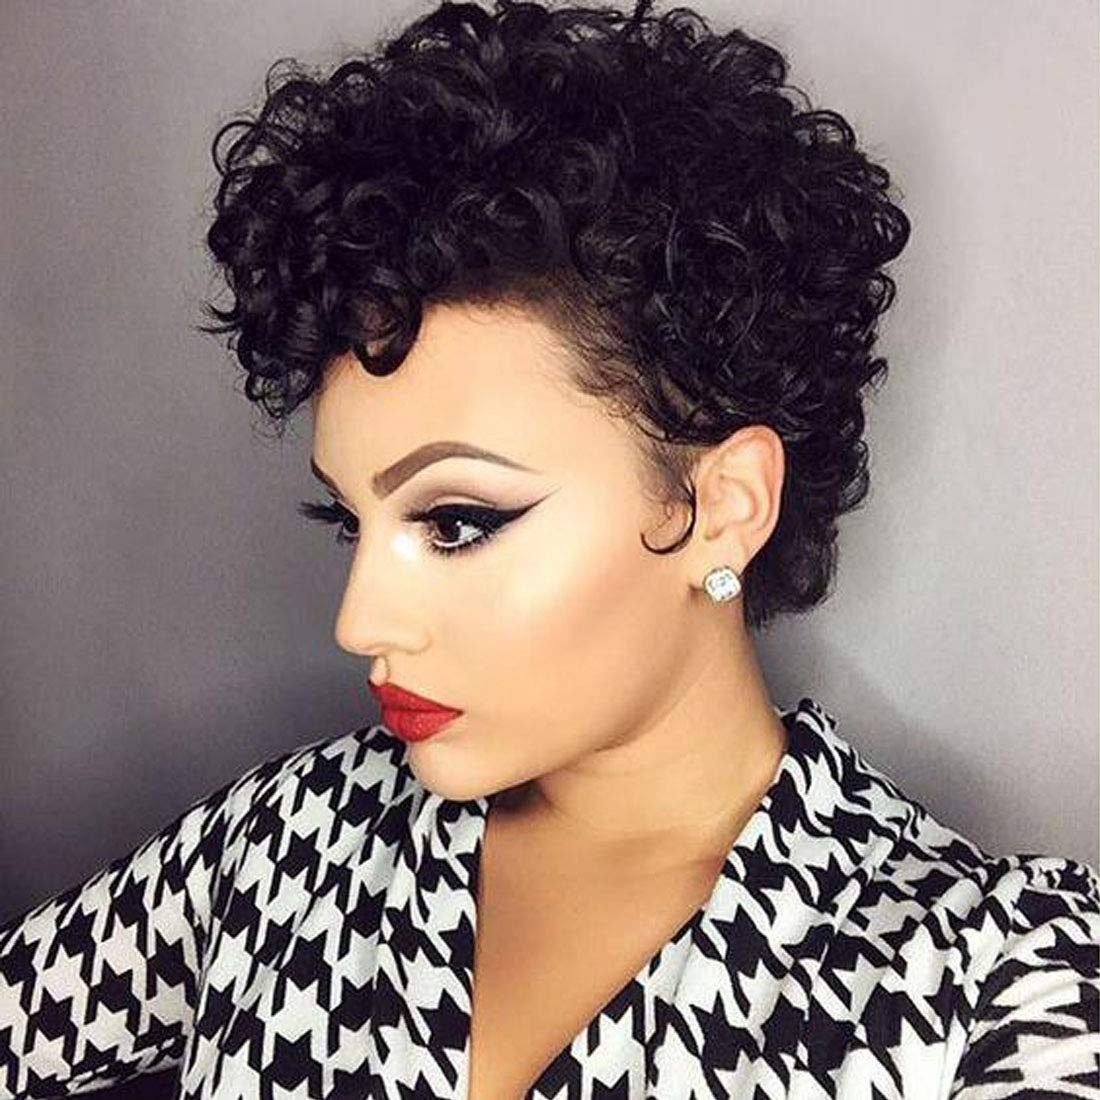 Flandi Short Pixie Cut Wigs for Black Women